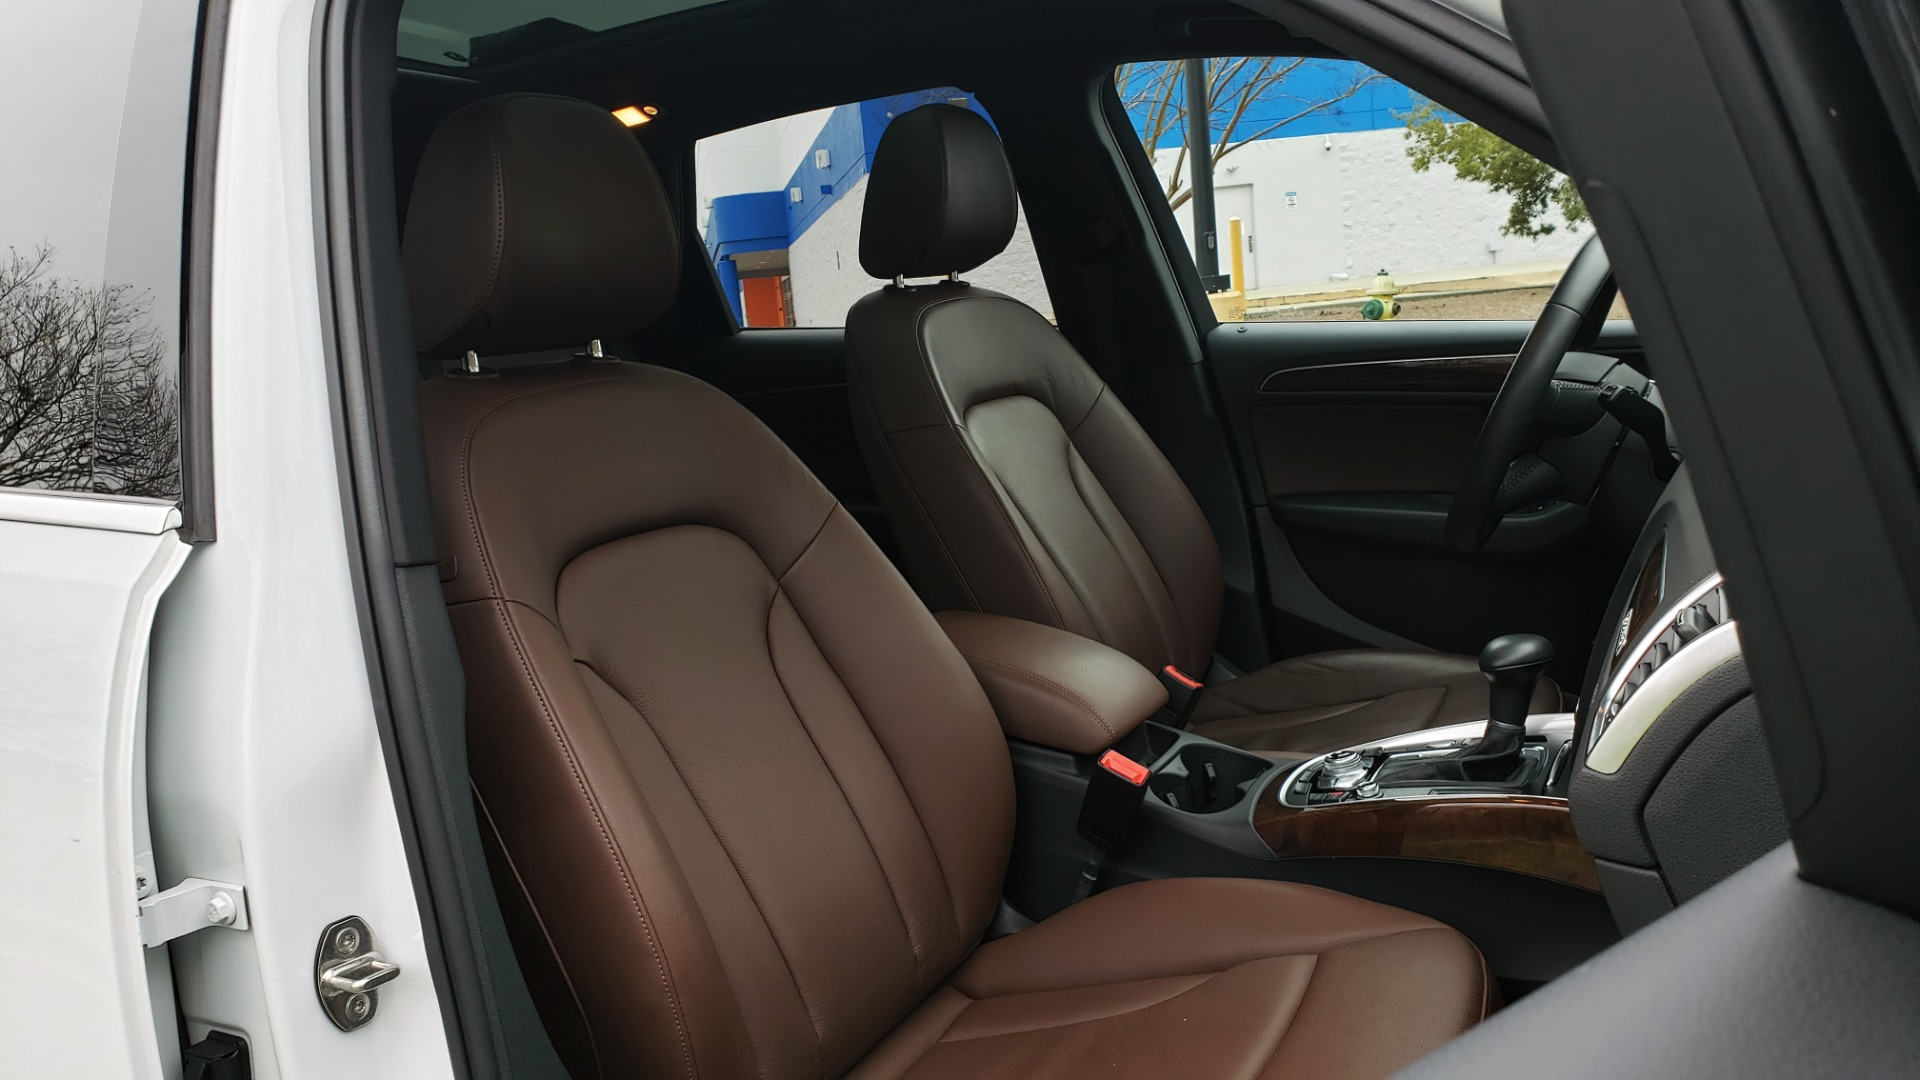 Used 2017 Audi Q5 PREMIUM PLUS / TECH / NAV / PANO-ROOF / B&O SND / REARVIEW for sale Sold at Formula Imports in Charlotte NC 28227 72